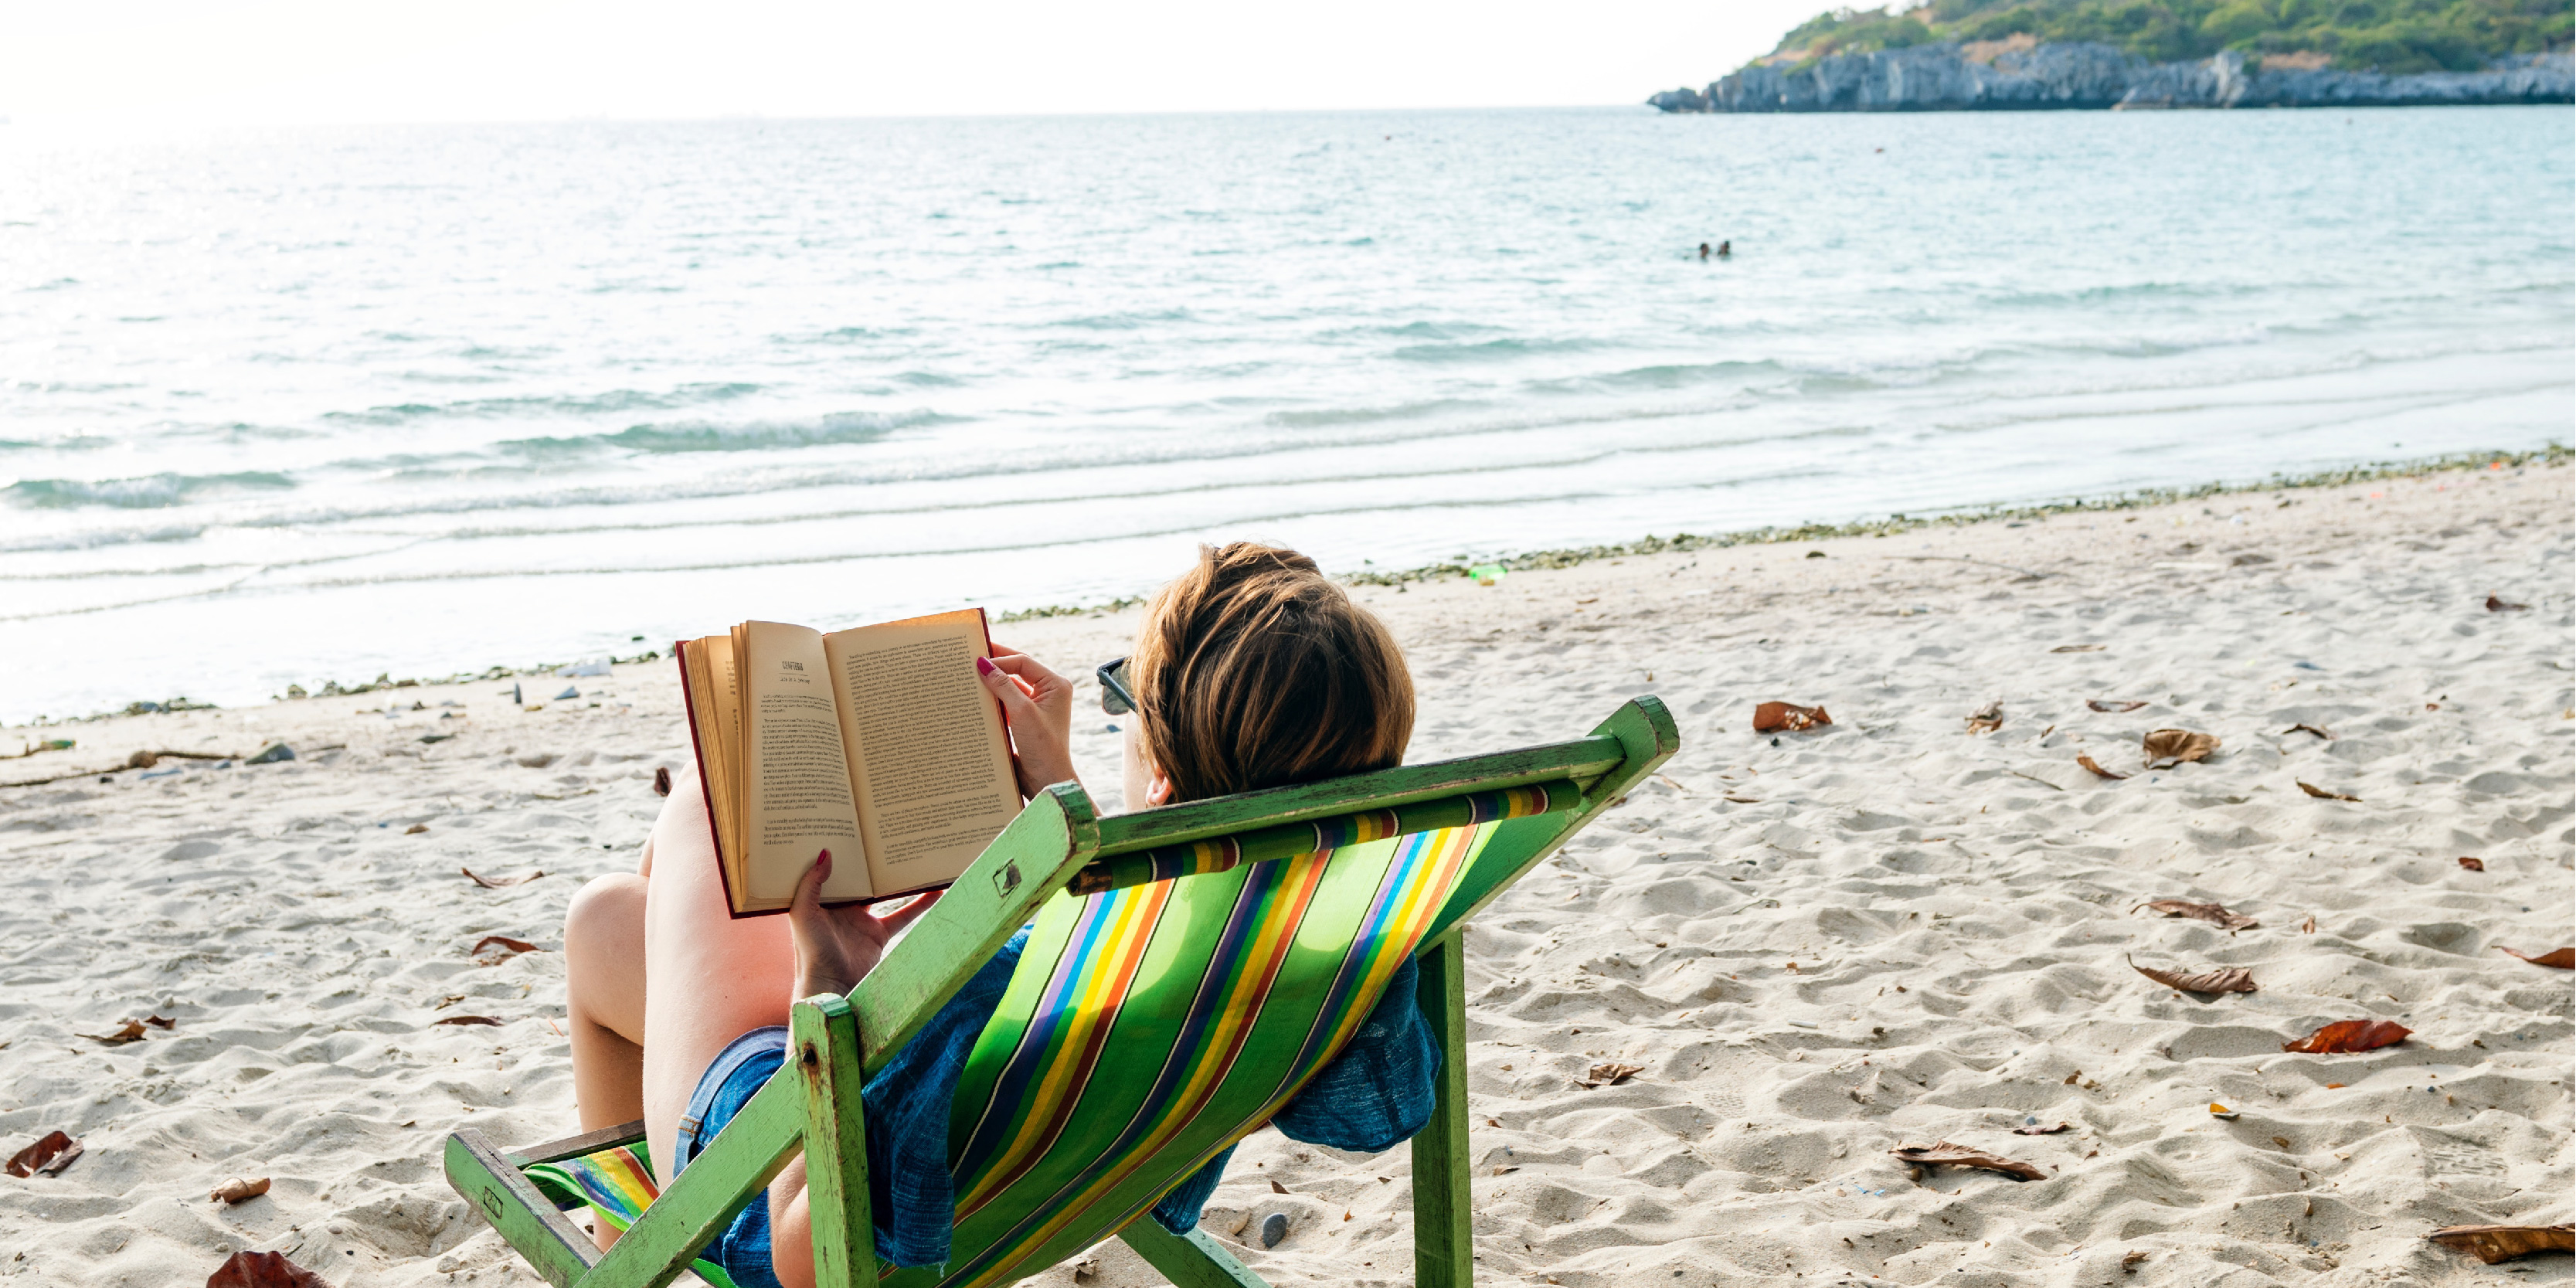 person on a beach reading a book